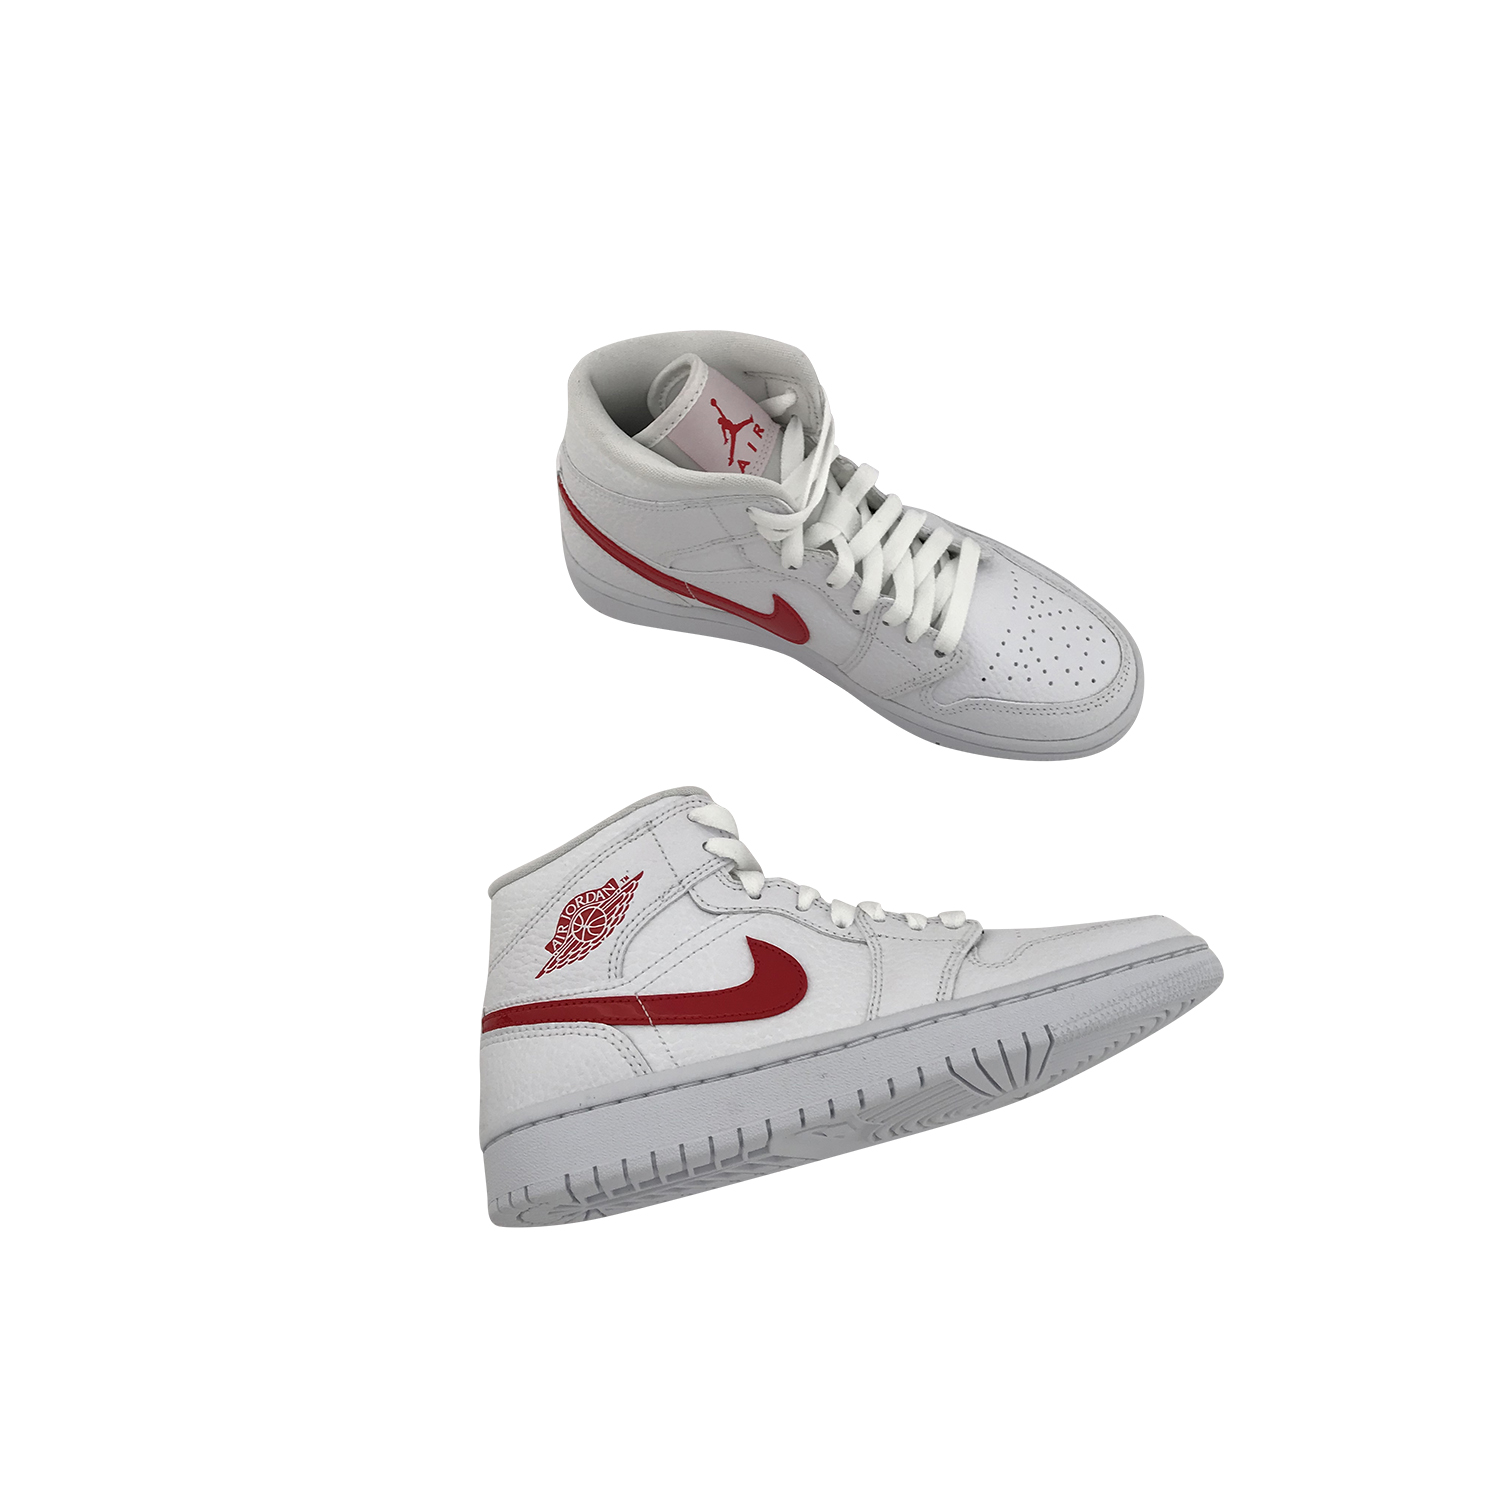 NIKE AIR JORDAN 1 MID WHITE UNIVERSITY RED (W) BQ6472 106